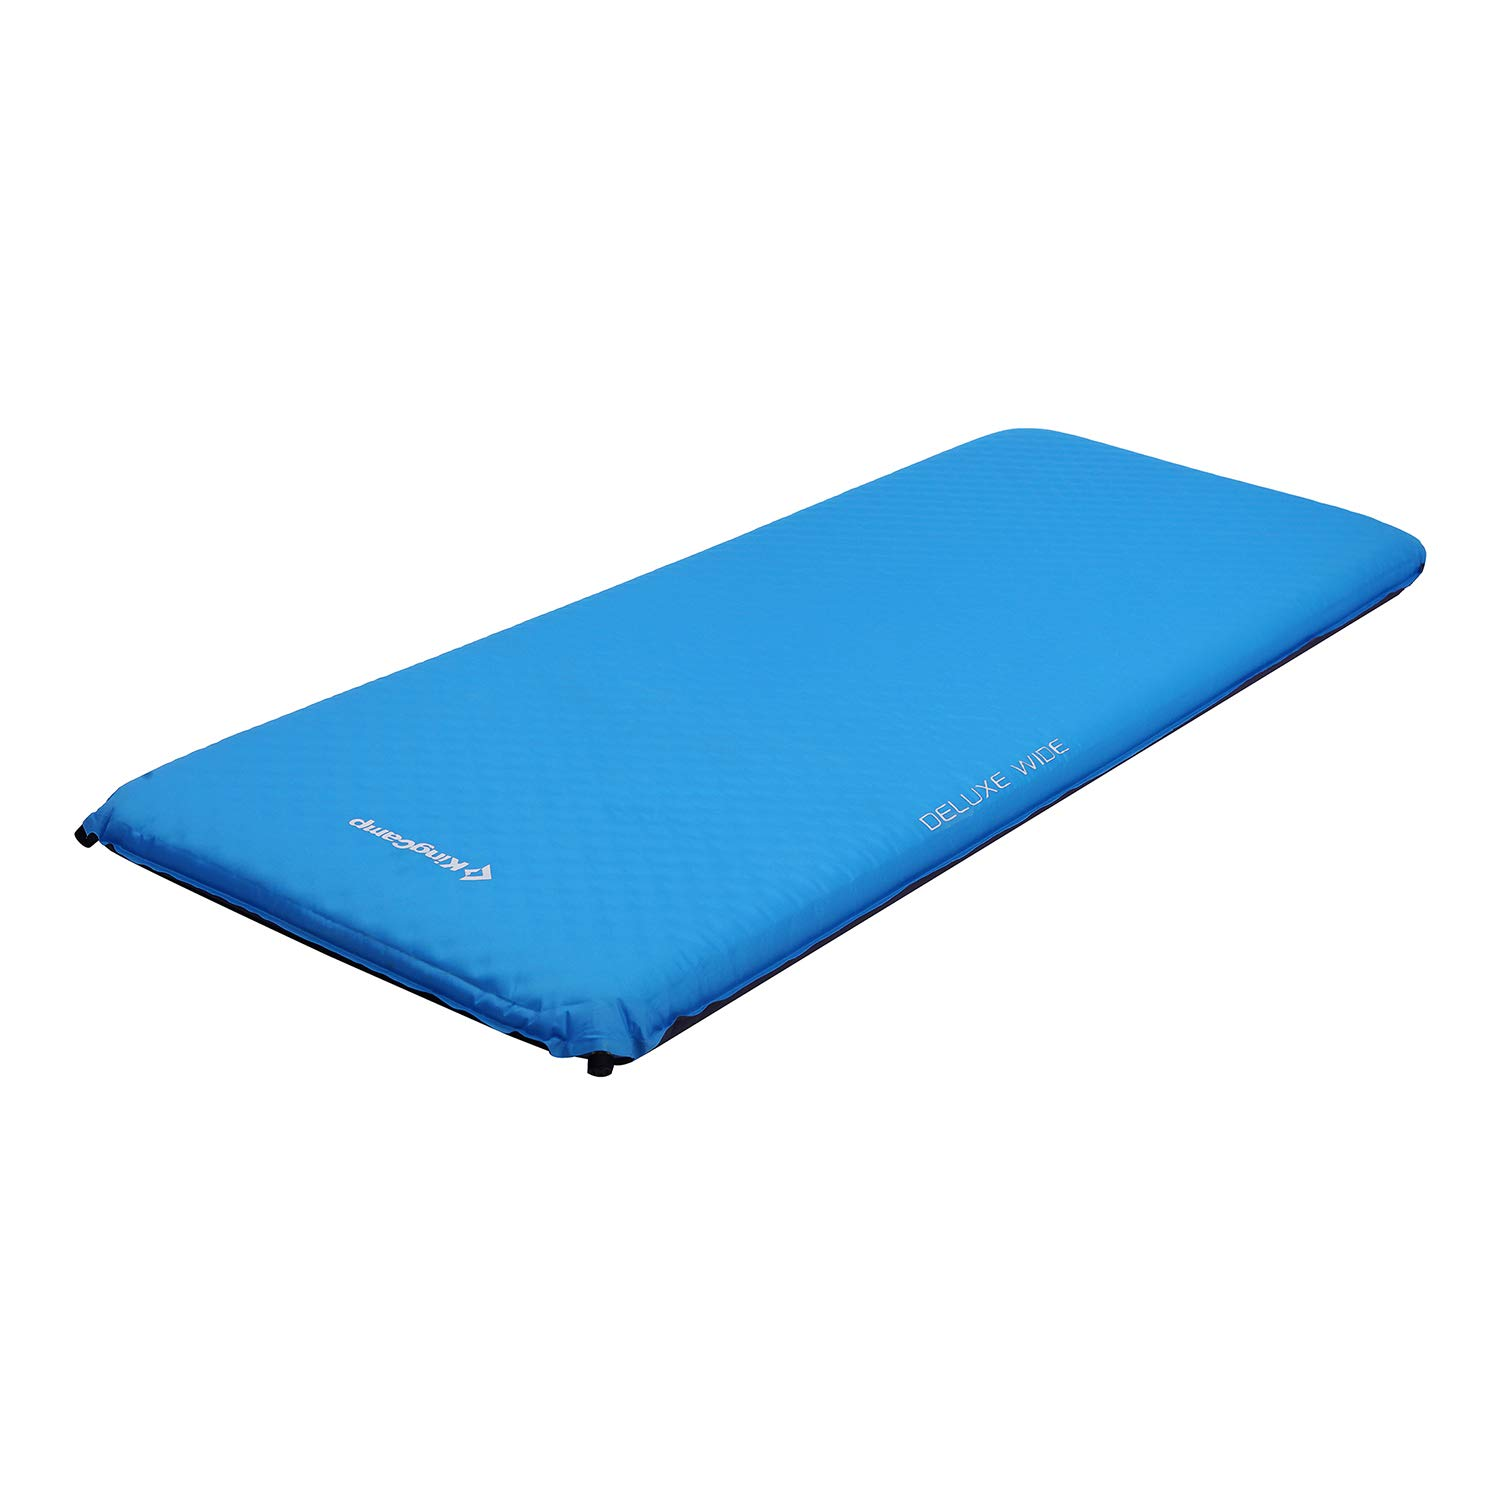 KingCamp Camping Sleeping Pad Foam Mat Mattress - Deluxe Wide Self Inflating 4 inches Thick Pad with Carry Bag, Suitable for Family Outdoor Activities (Blue-Deluxe Wide) by KingCamp